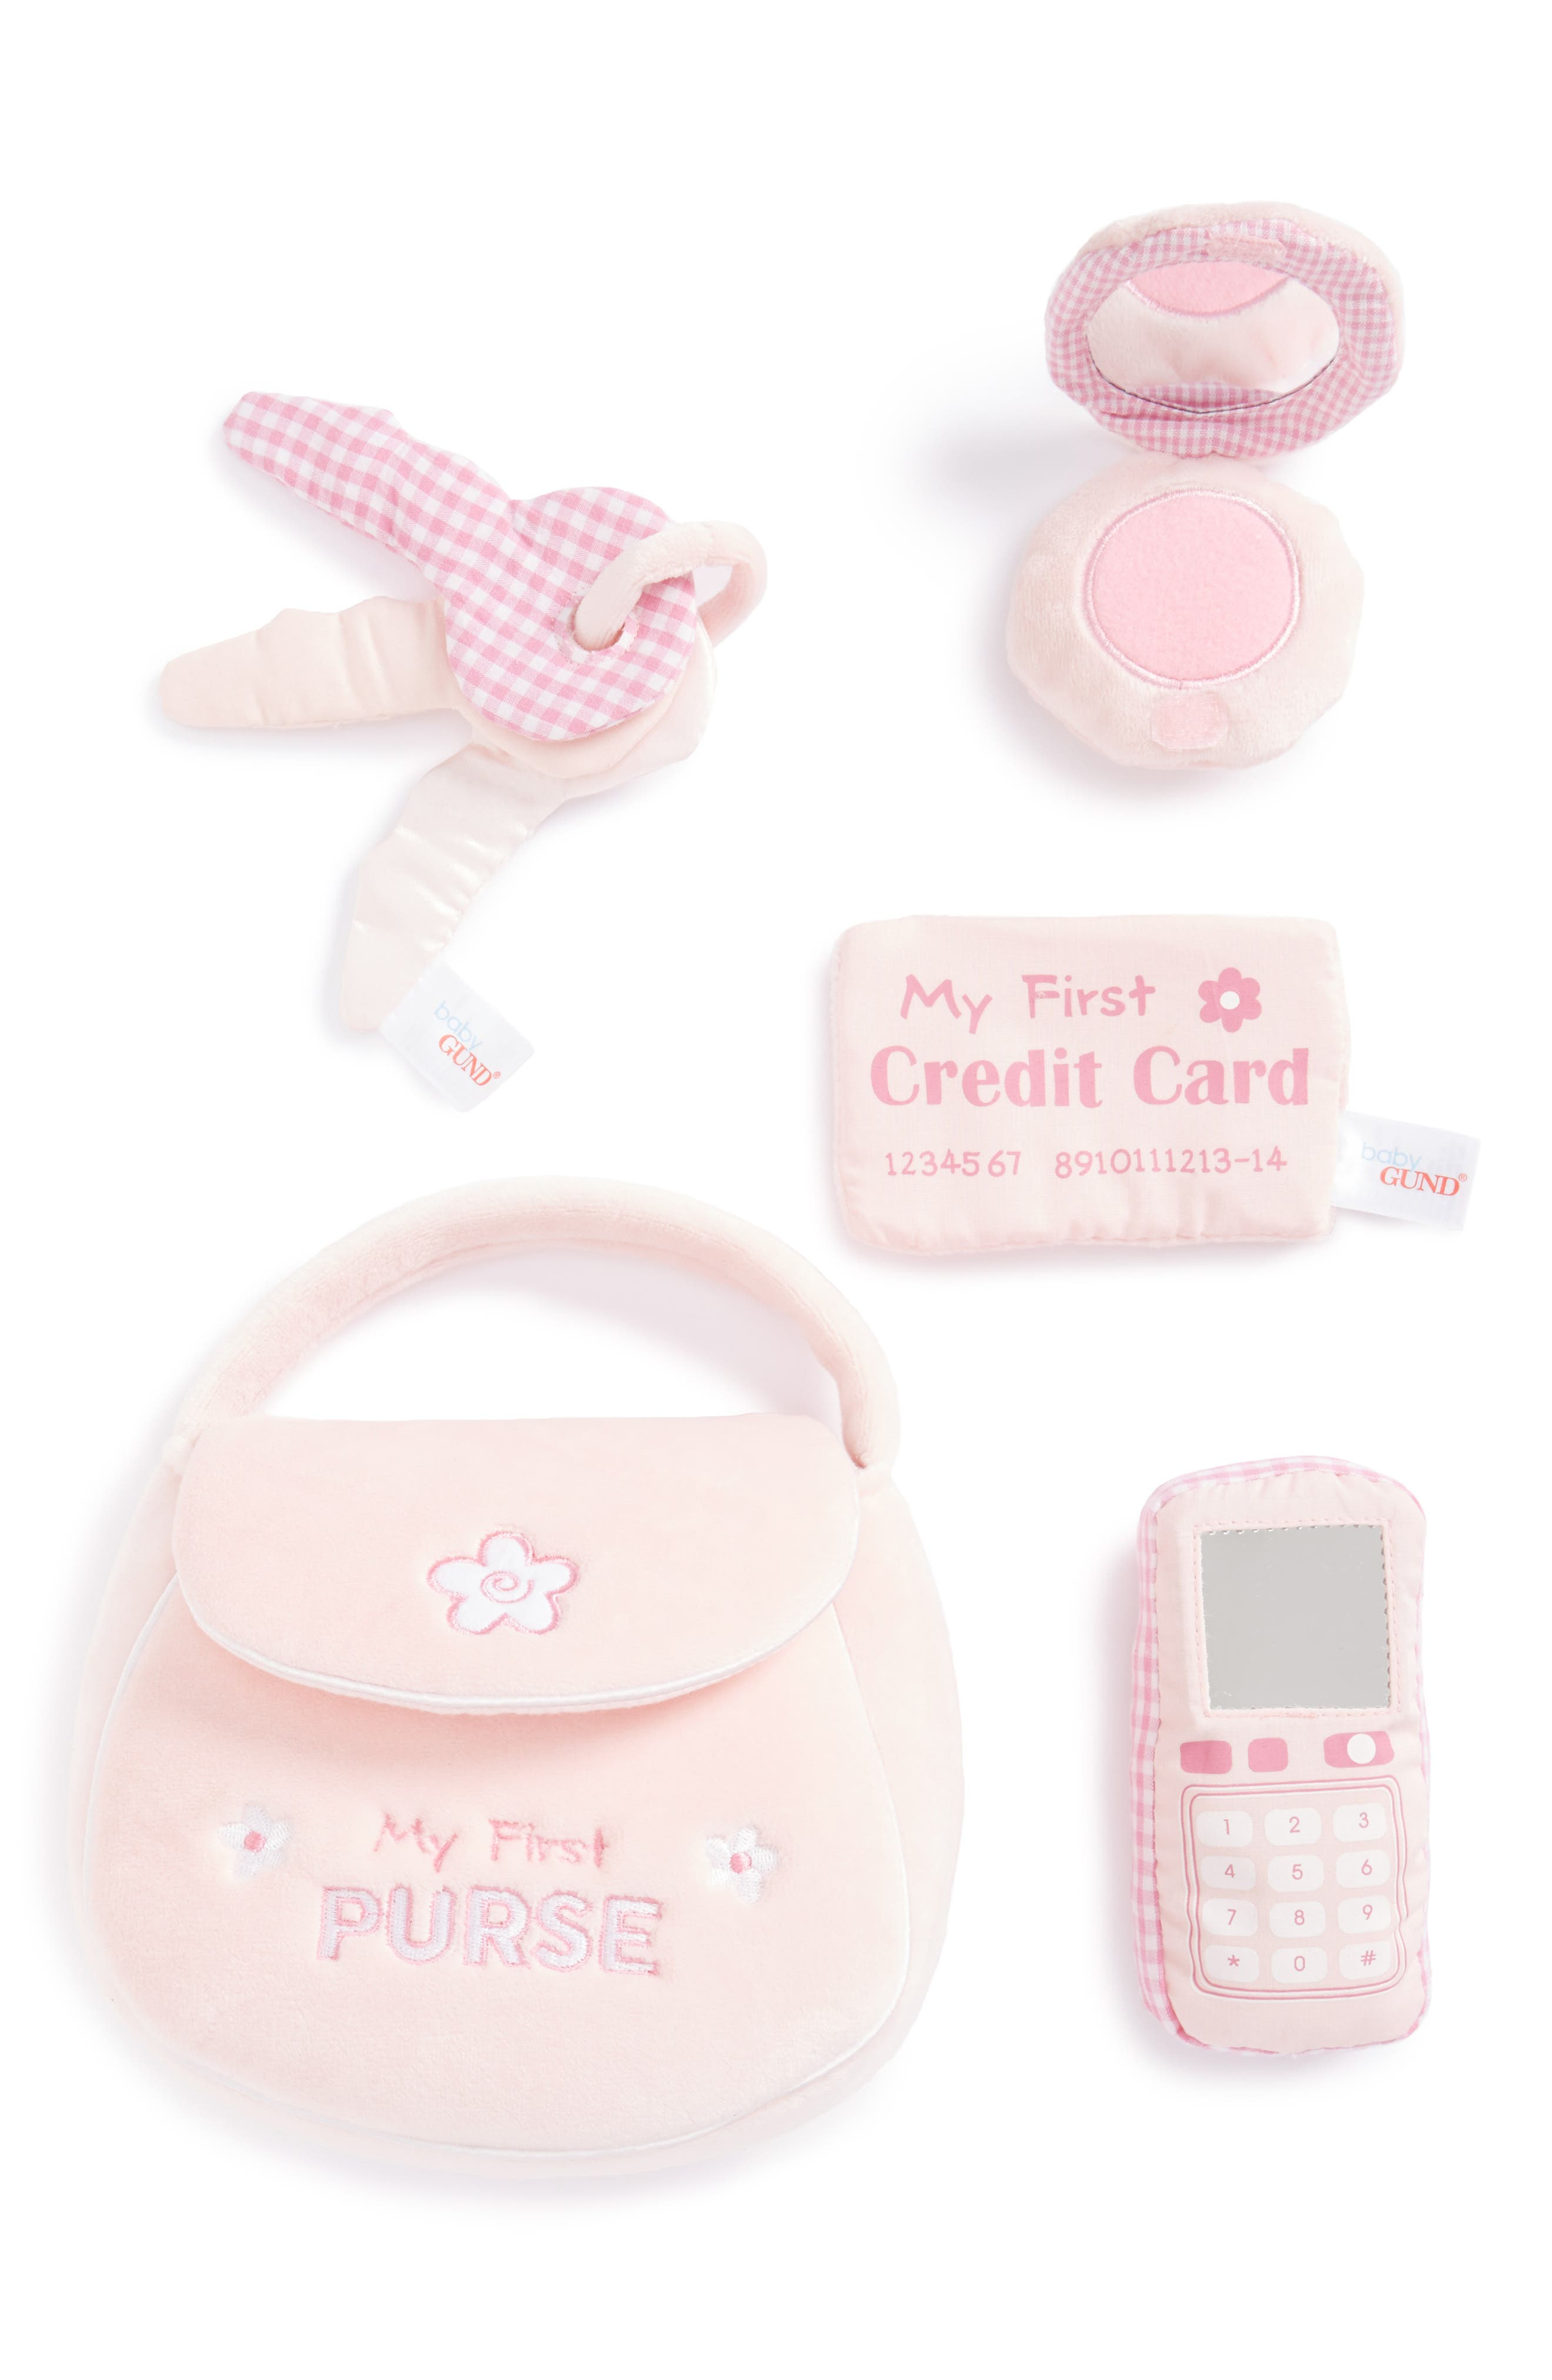 Baby Gund 'My First Purse' Play Set,                             Alternate thumbnail 2, color,                             650